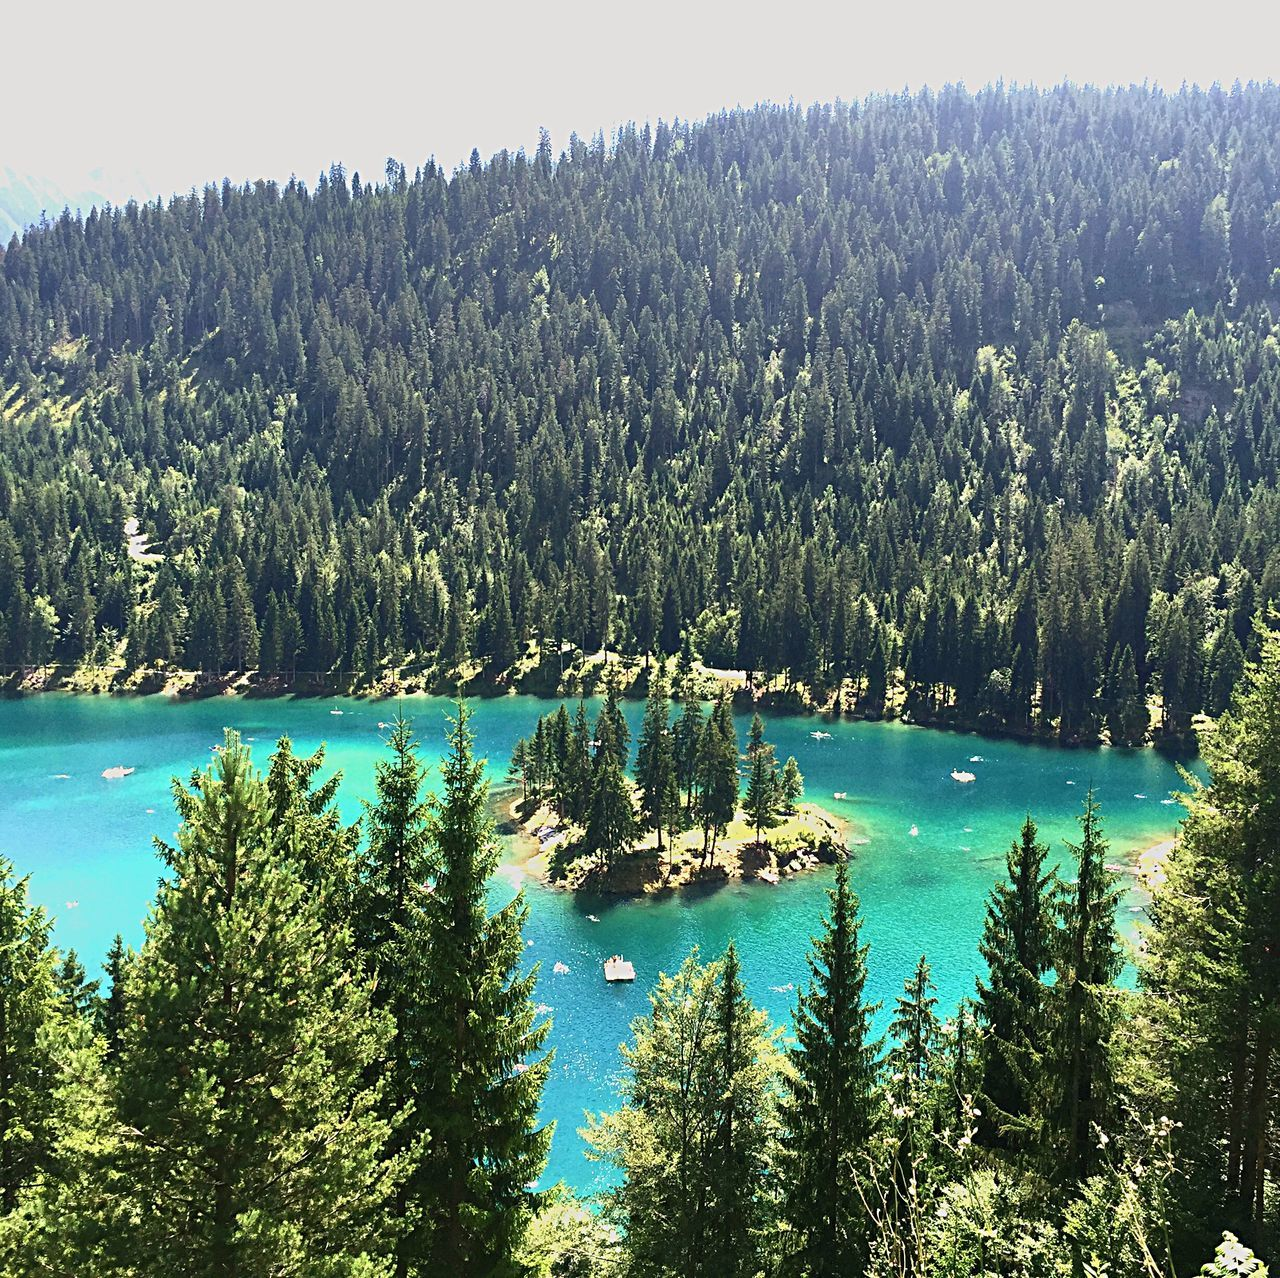 Caumasee Flims Bergsee Nature Beauty In Nature Forest See Water Green Color Nature Photography